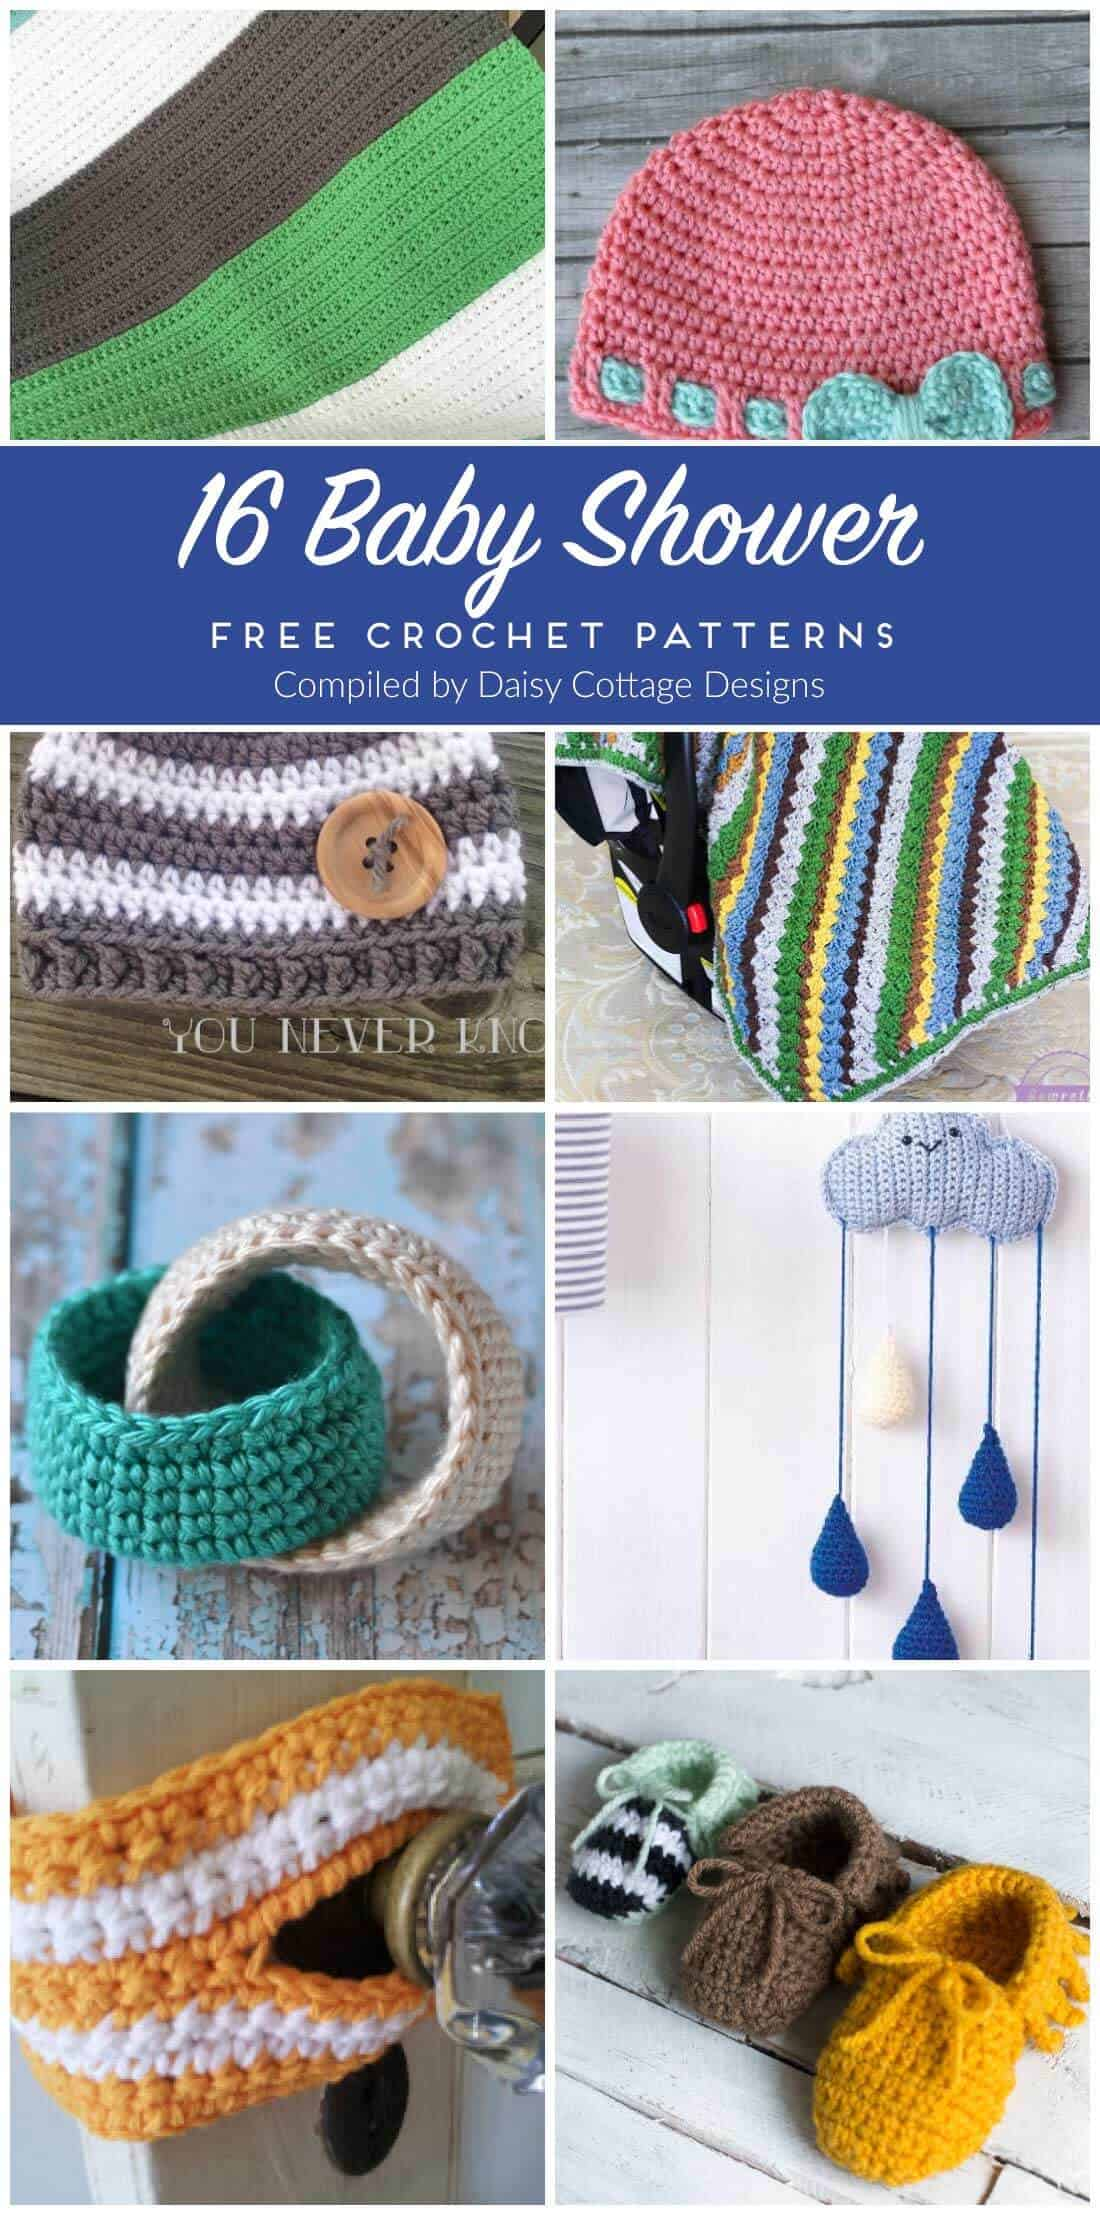 Free Crochet Patterns For Baby Daisy Cottage Designs